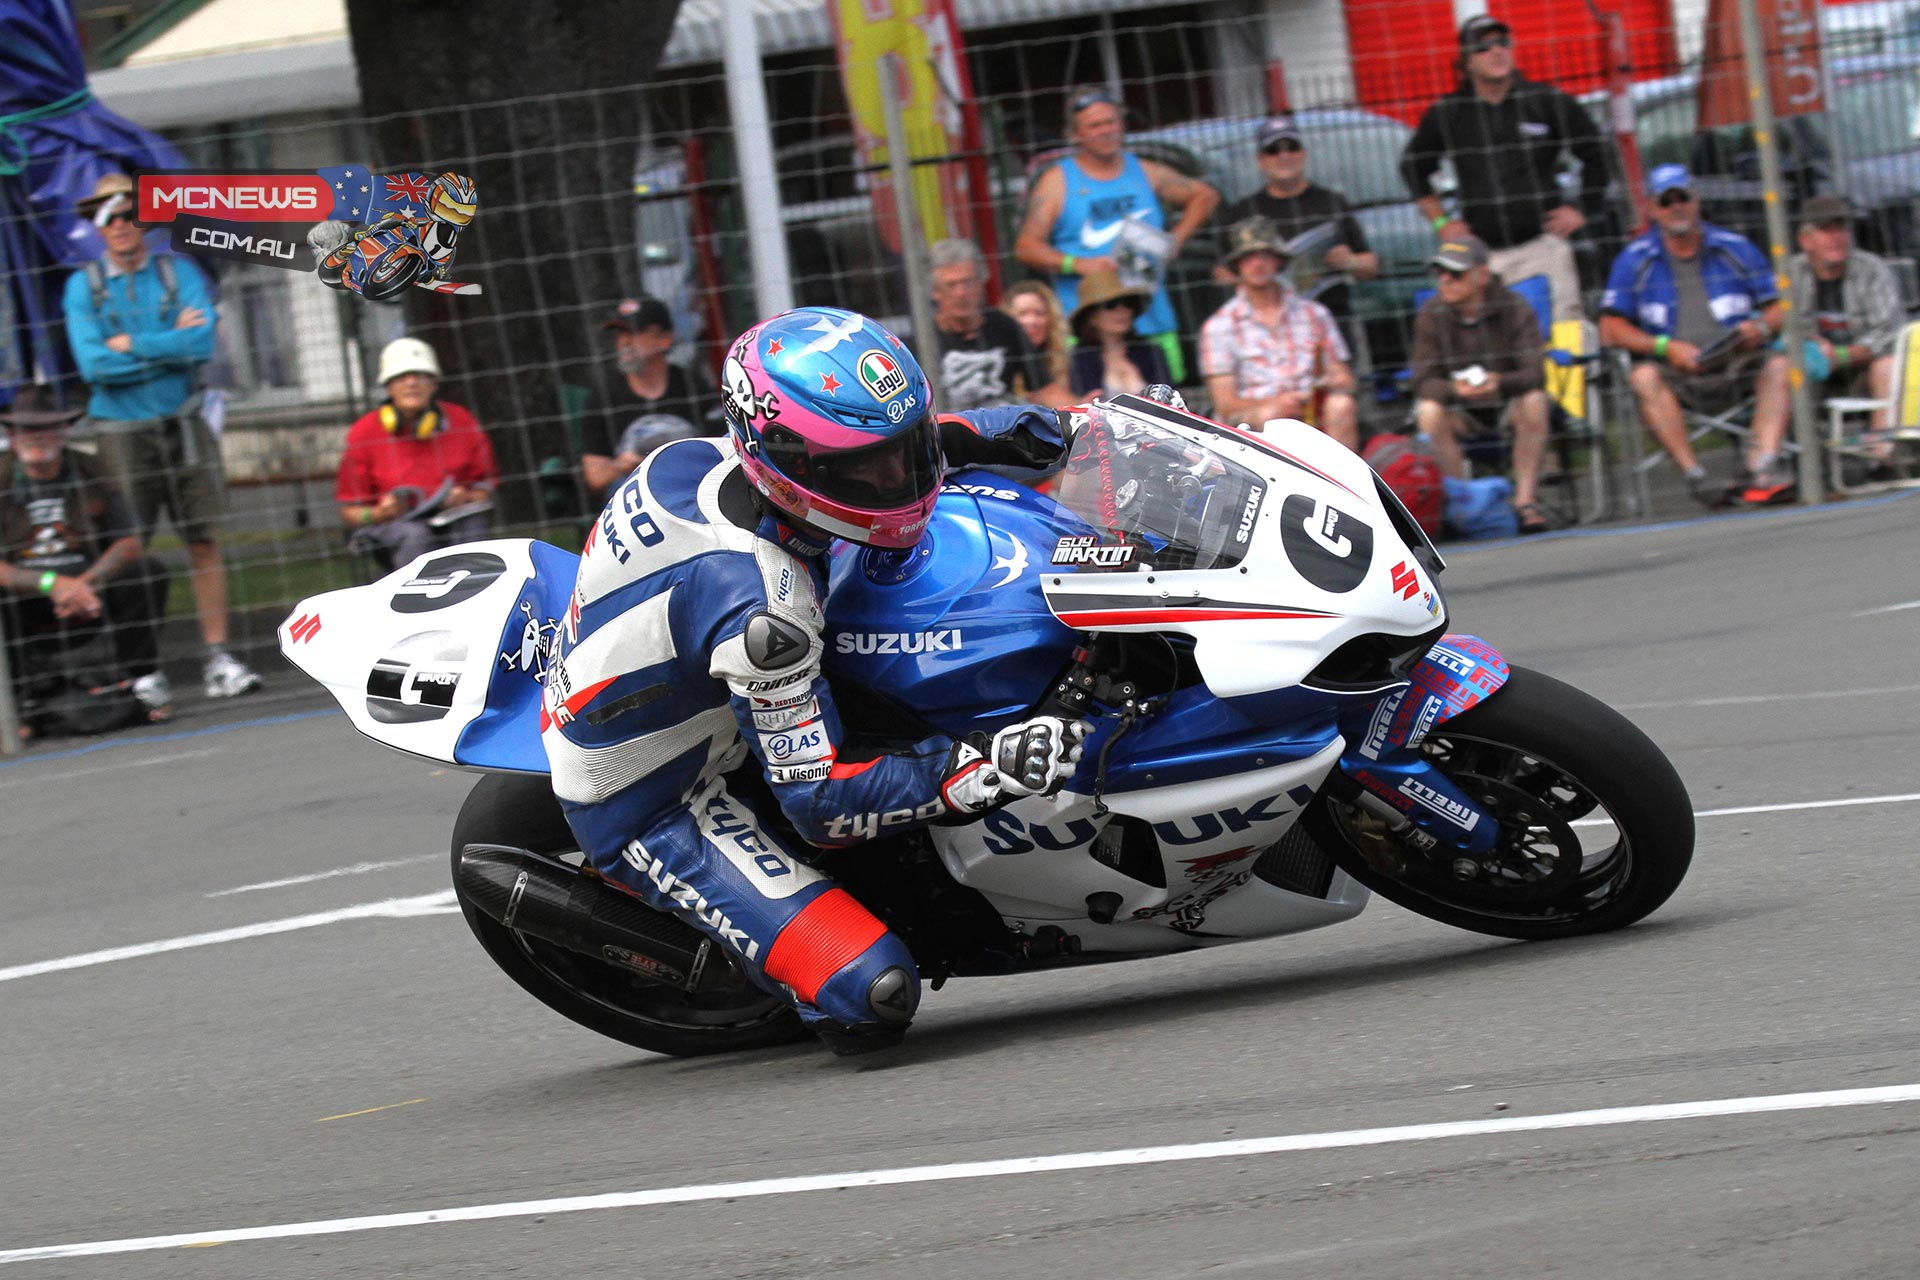 Guy Martin races Suzuki GSXR1000 around Cemetery Circuit